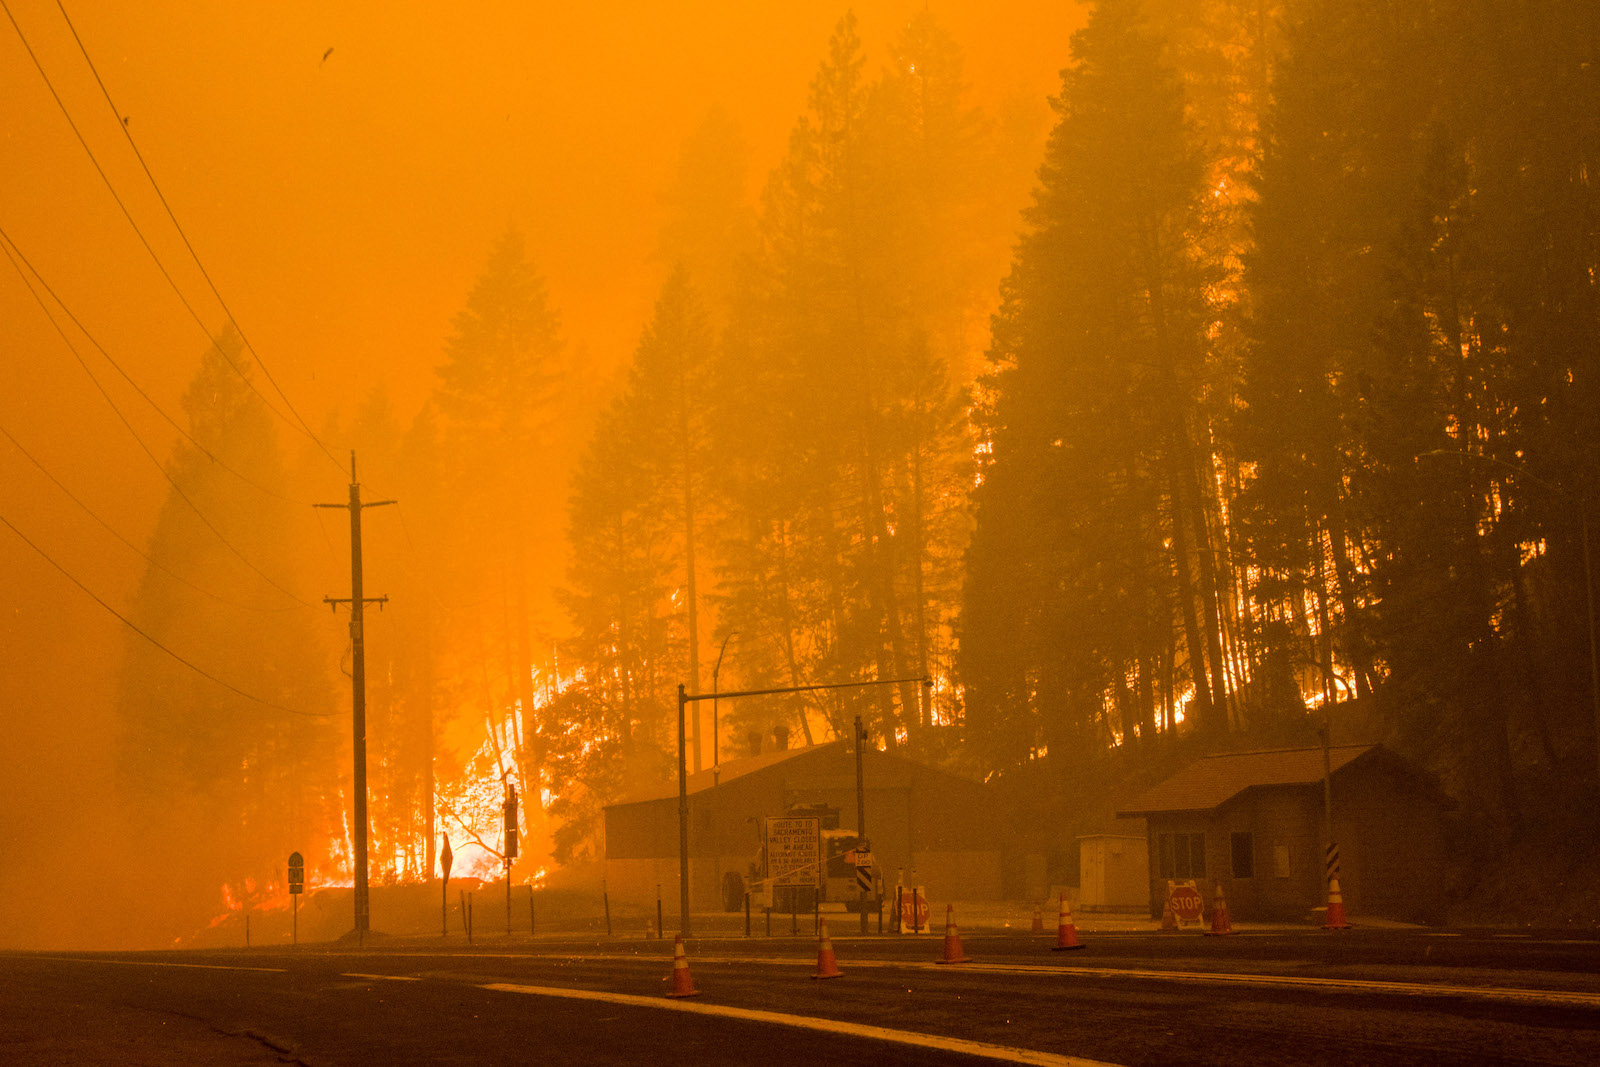 A highway with traffic cones and house-like buildings on the side of the road. Large wildfire flames engulf nearby trees. The whole scene is a burnt orange color due to smoke.